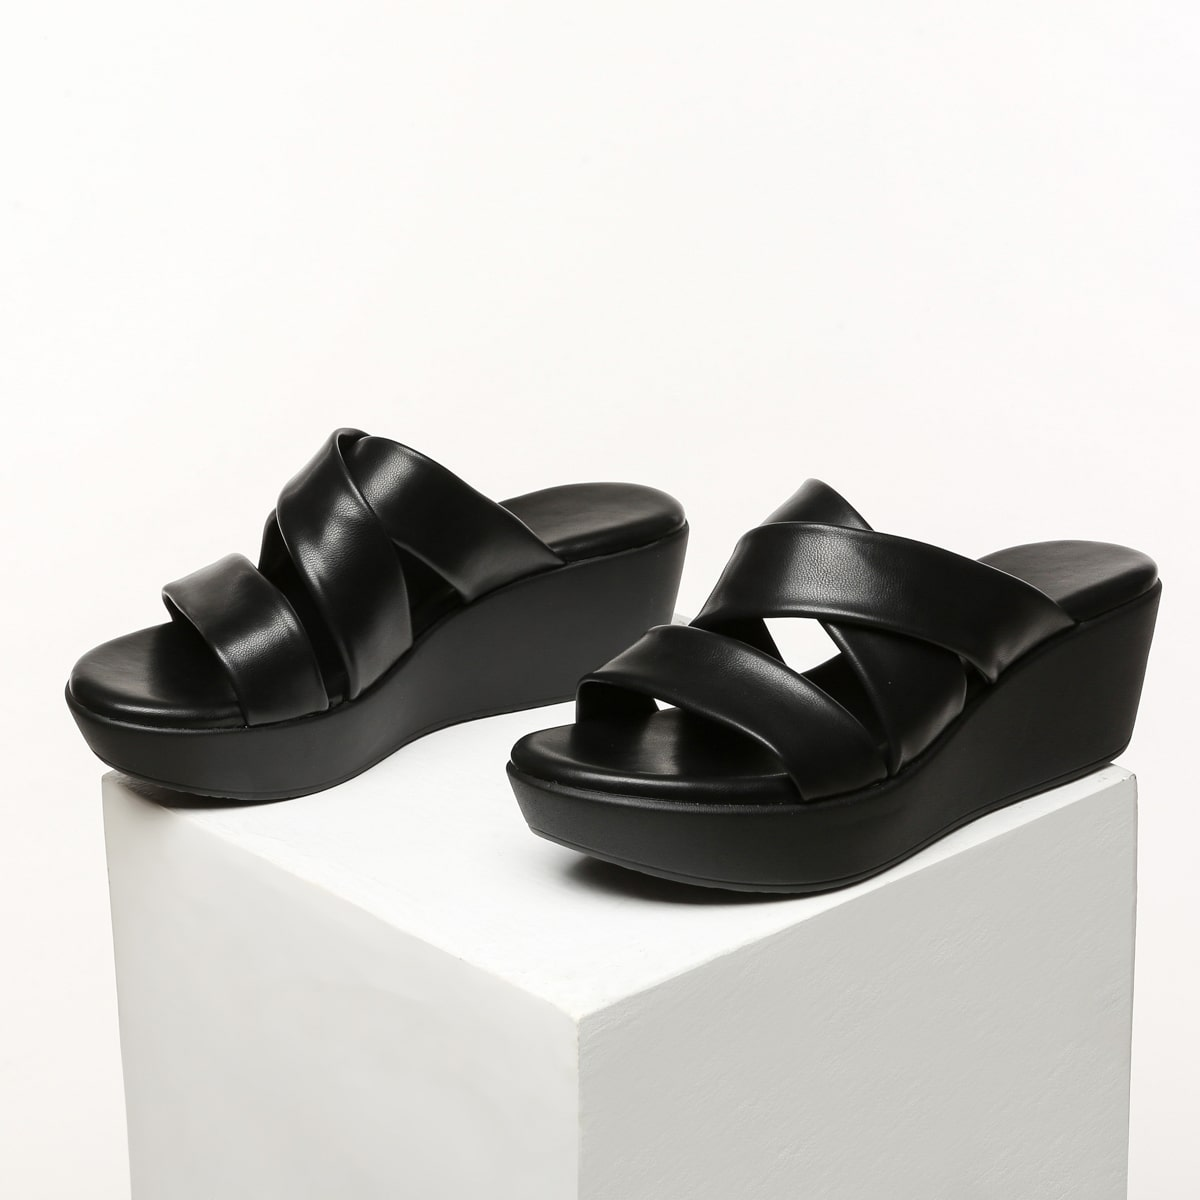 Criss Cross Wedge Sandals, SHEIN  - buy with discount